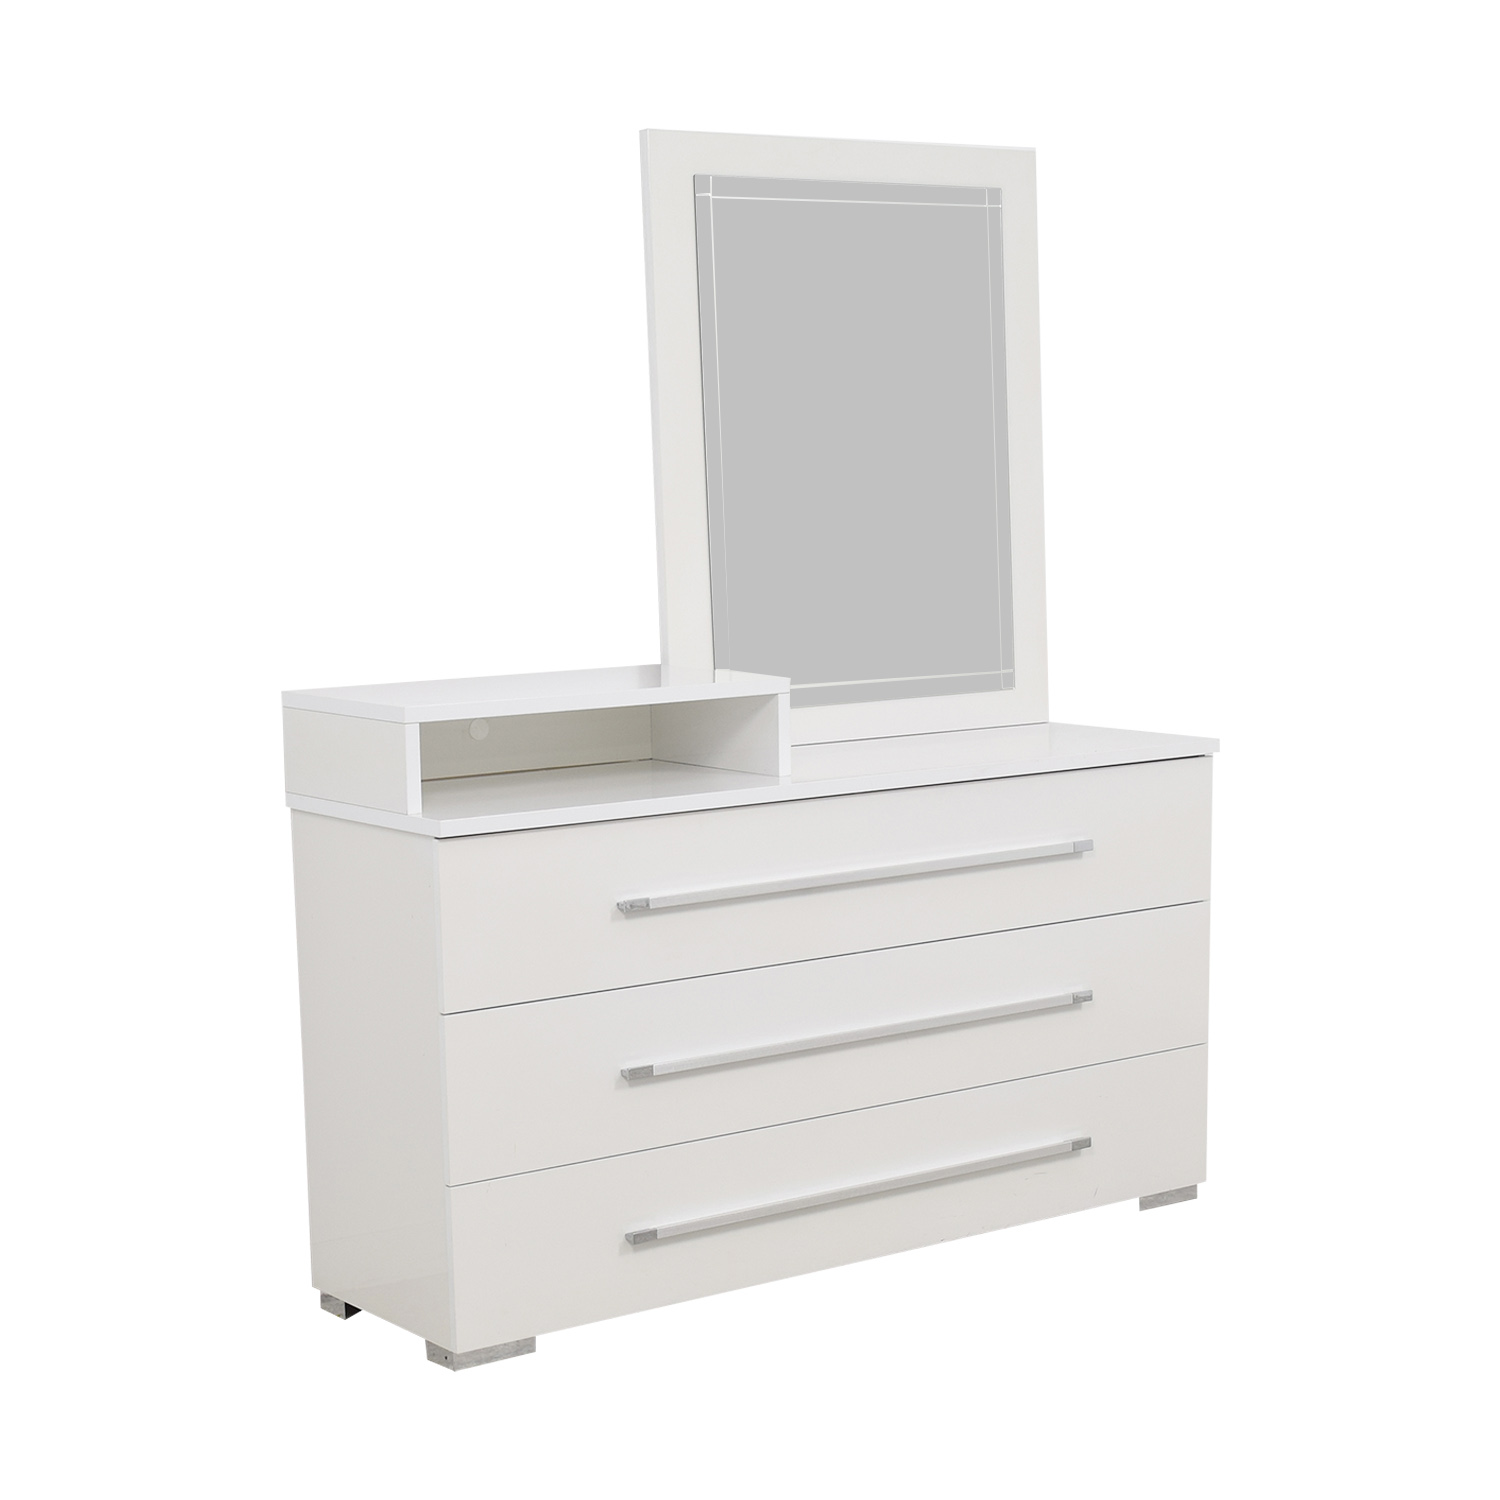 Value City Furniture Value City Furniture White Dresser with Deck and Mirror on sale